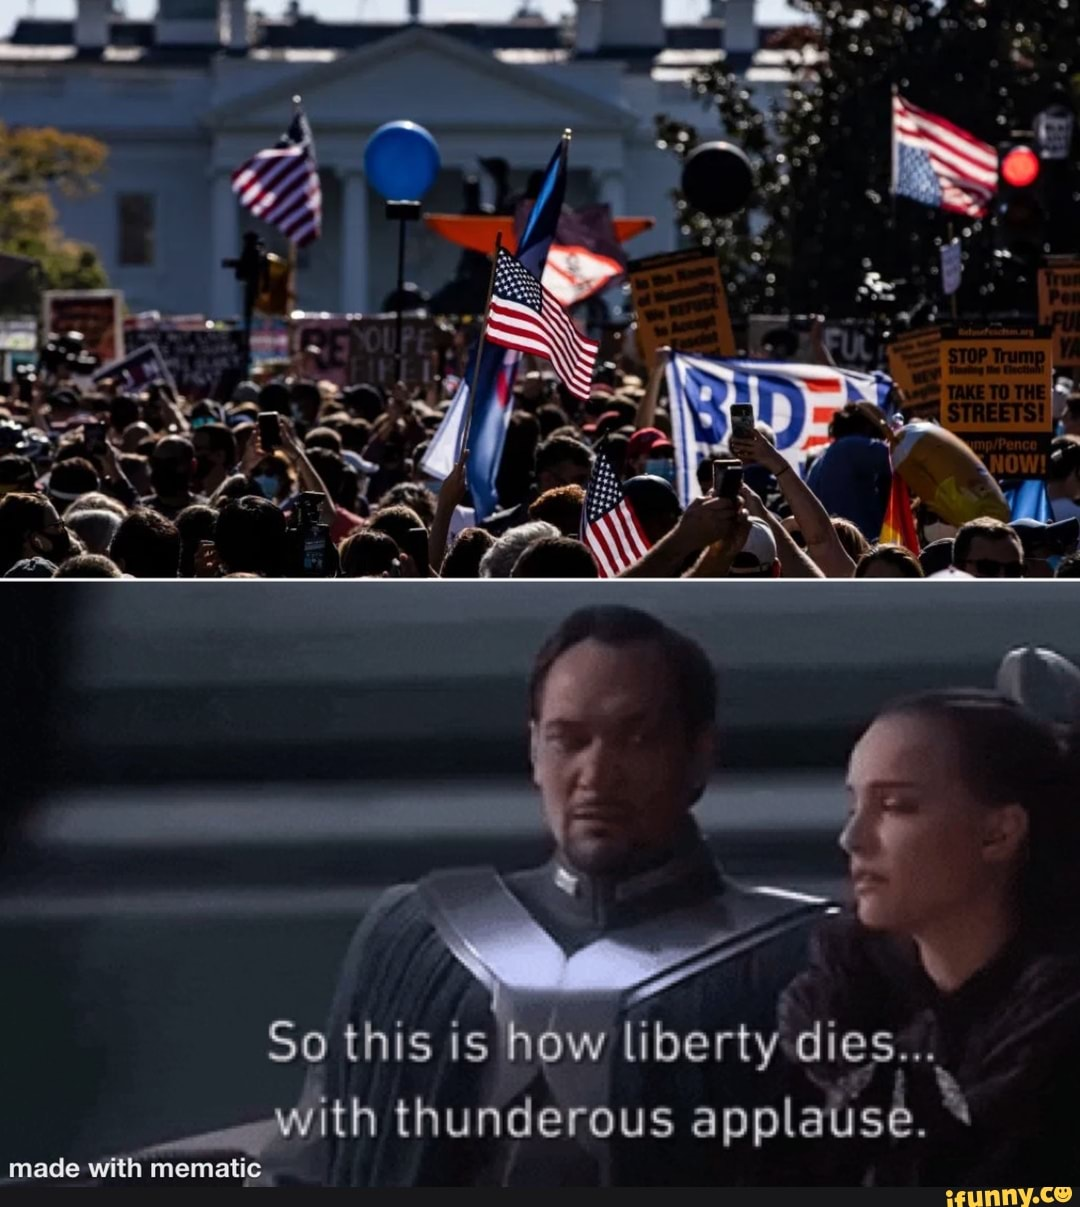 So this is how liberty dies... with thunderous applause.